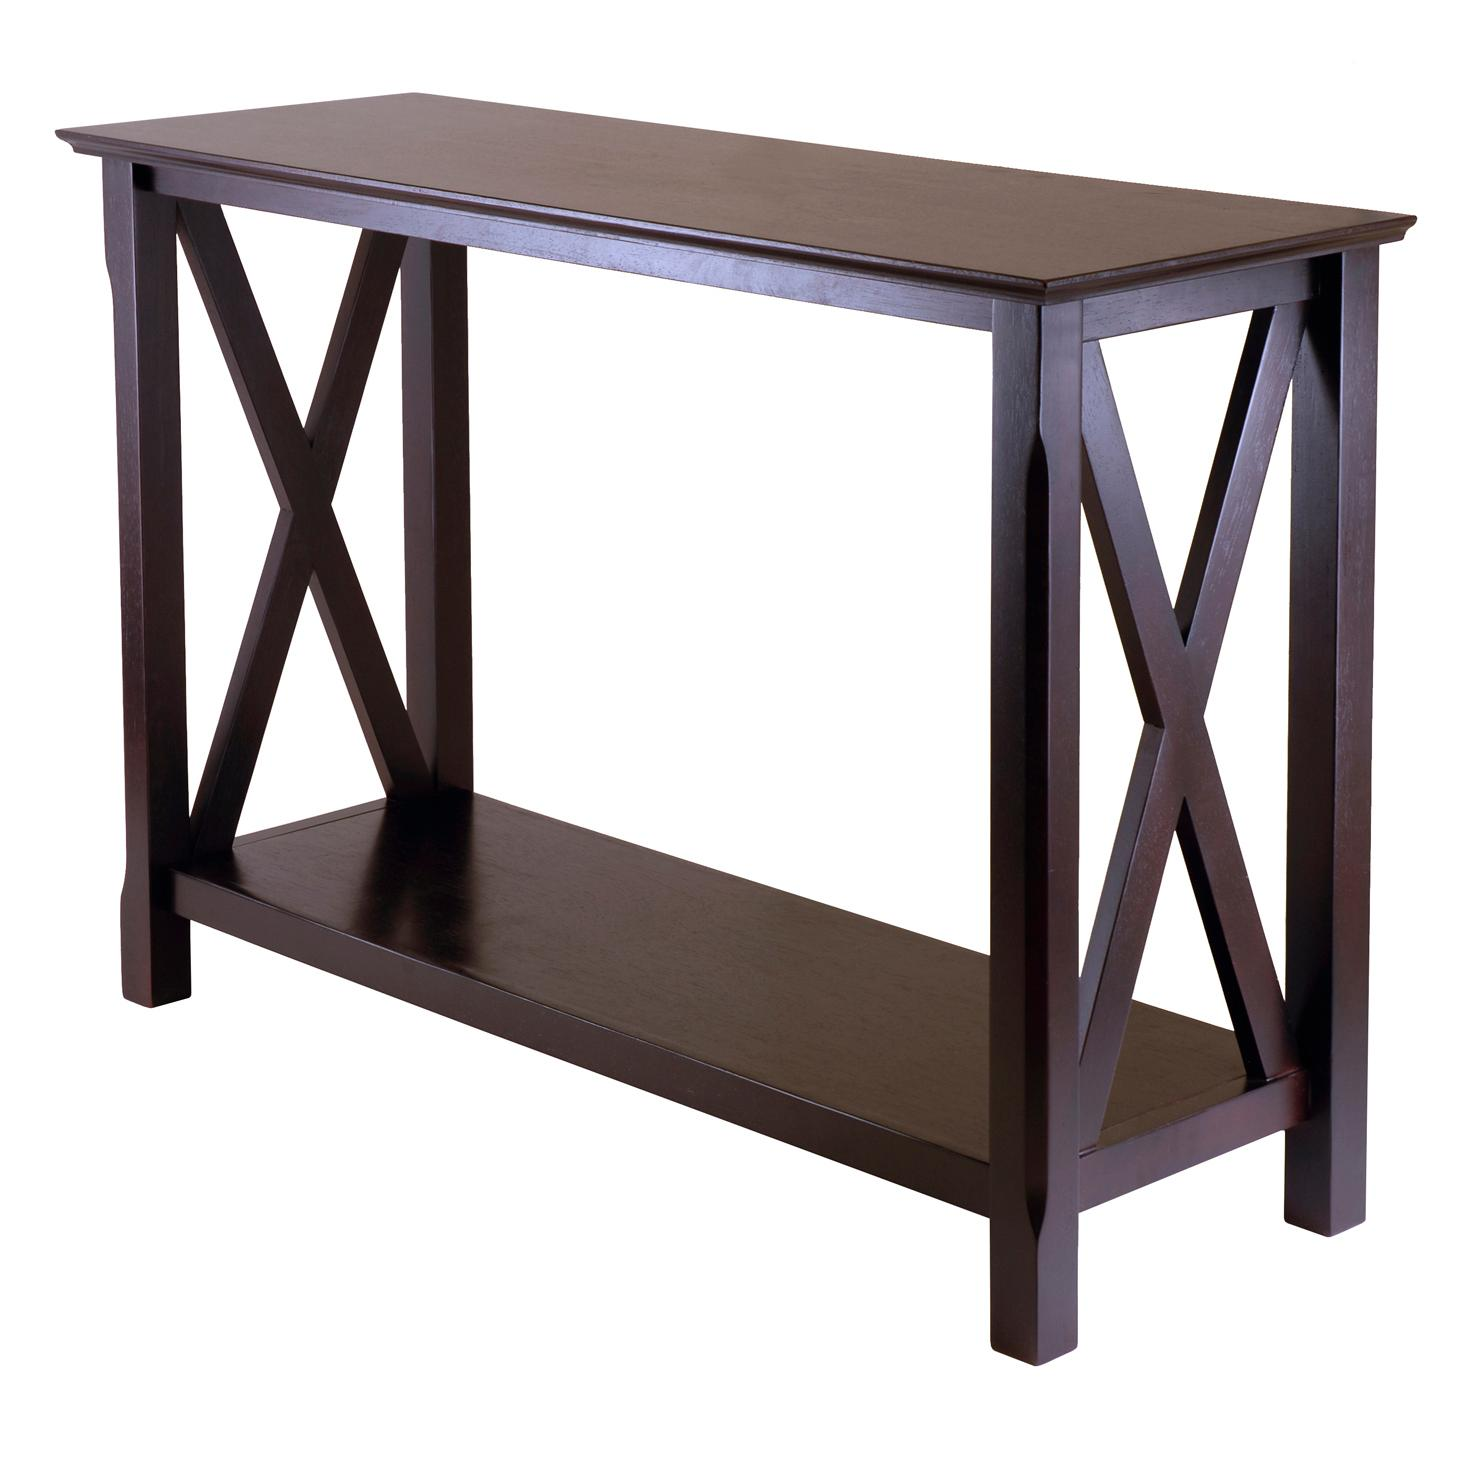 Winsome wood xola console table kitchen dining for Table console